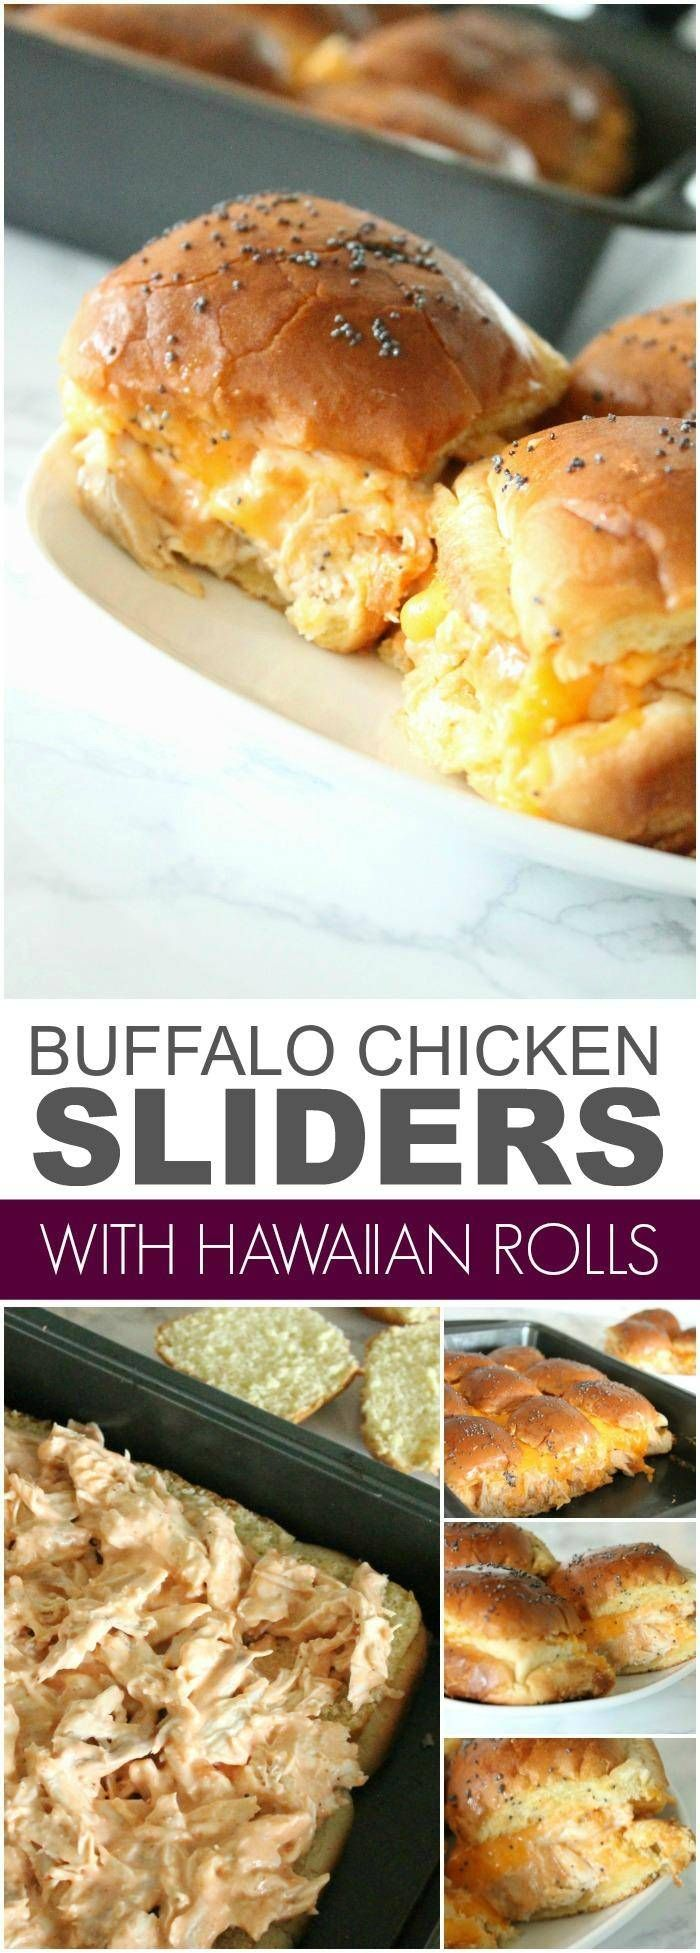 Buffalo Chicken Sliders Recipe with Hawaiian Rolls! - Passion For Savings